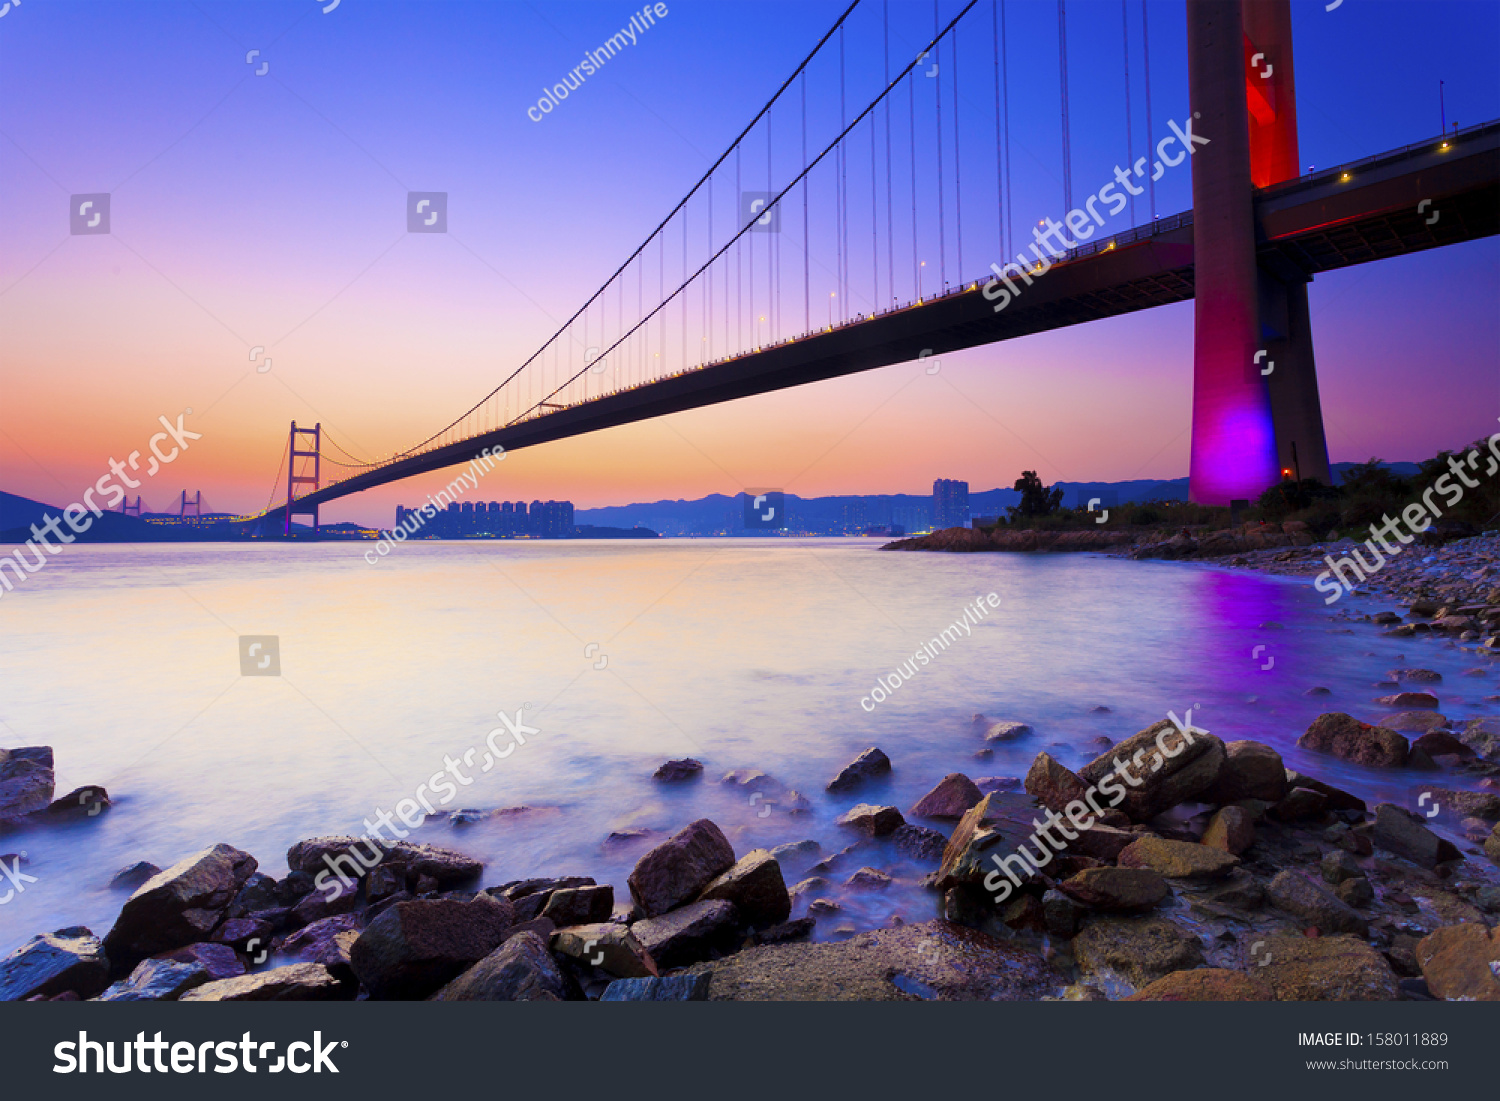 Sunset at modern bridge along coast #158011889